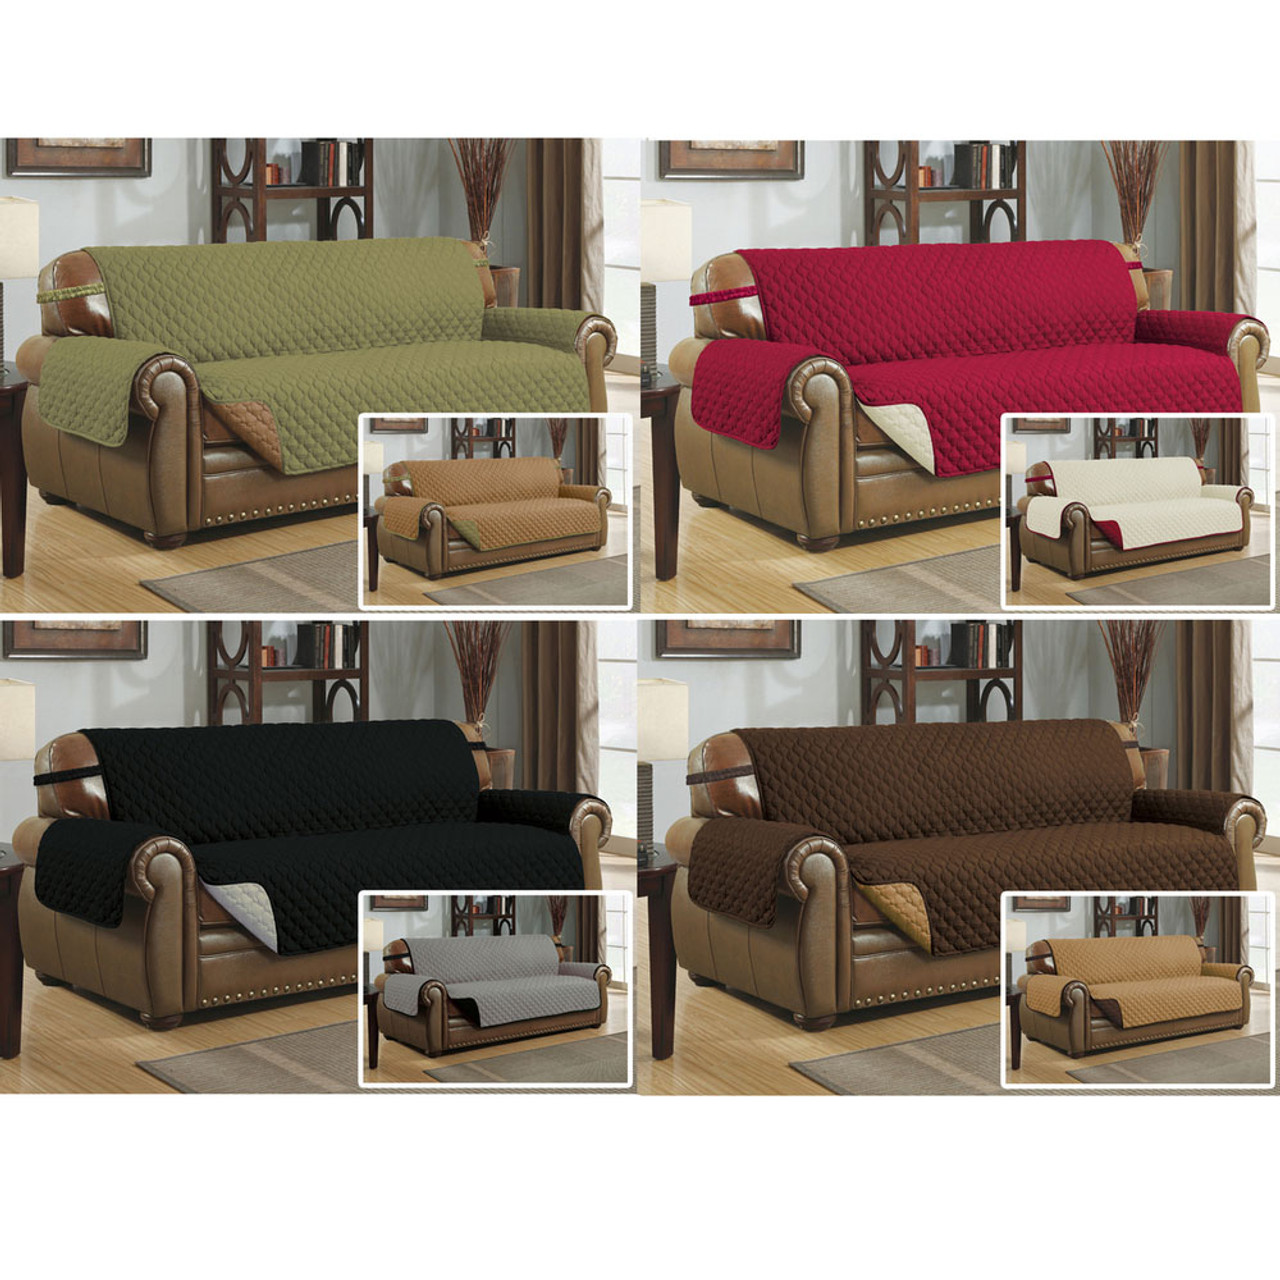 Sofa Throws and Blanket Linenstore